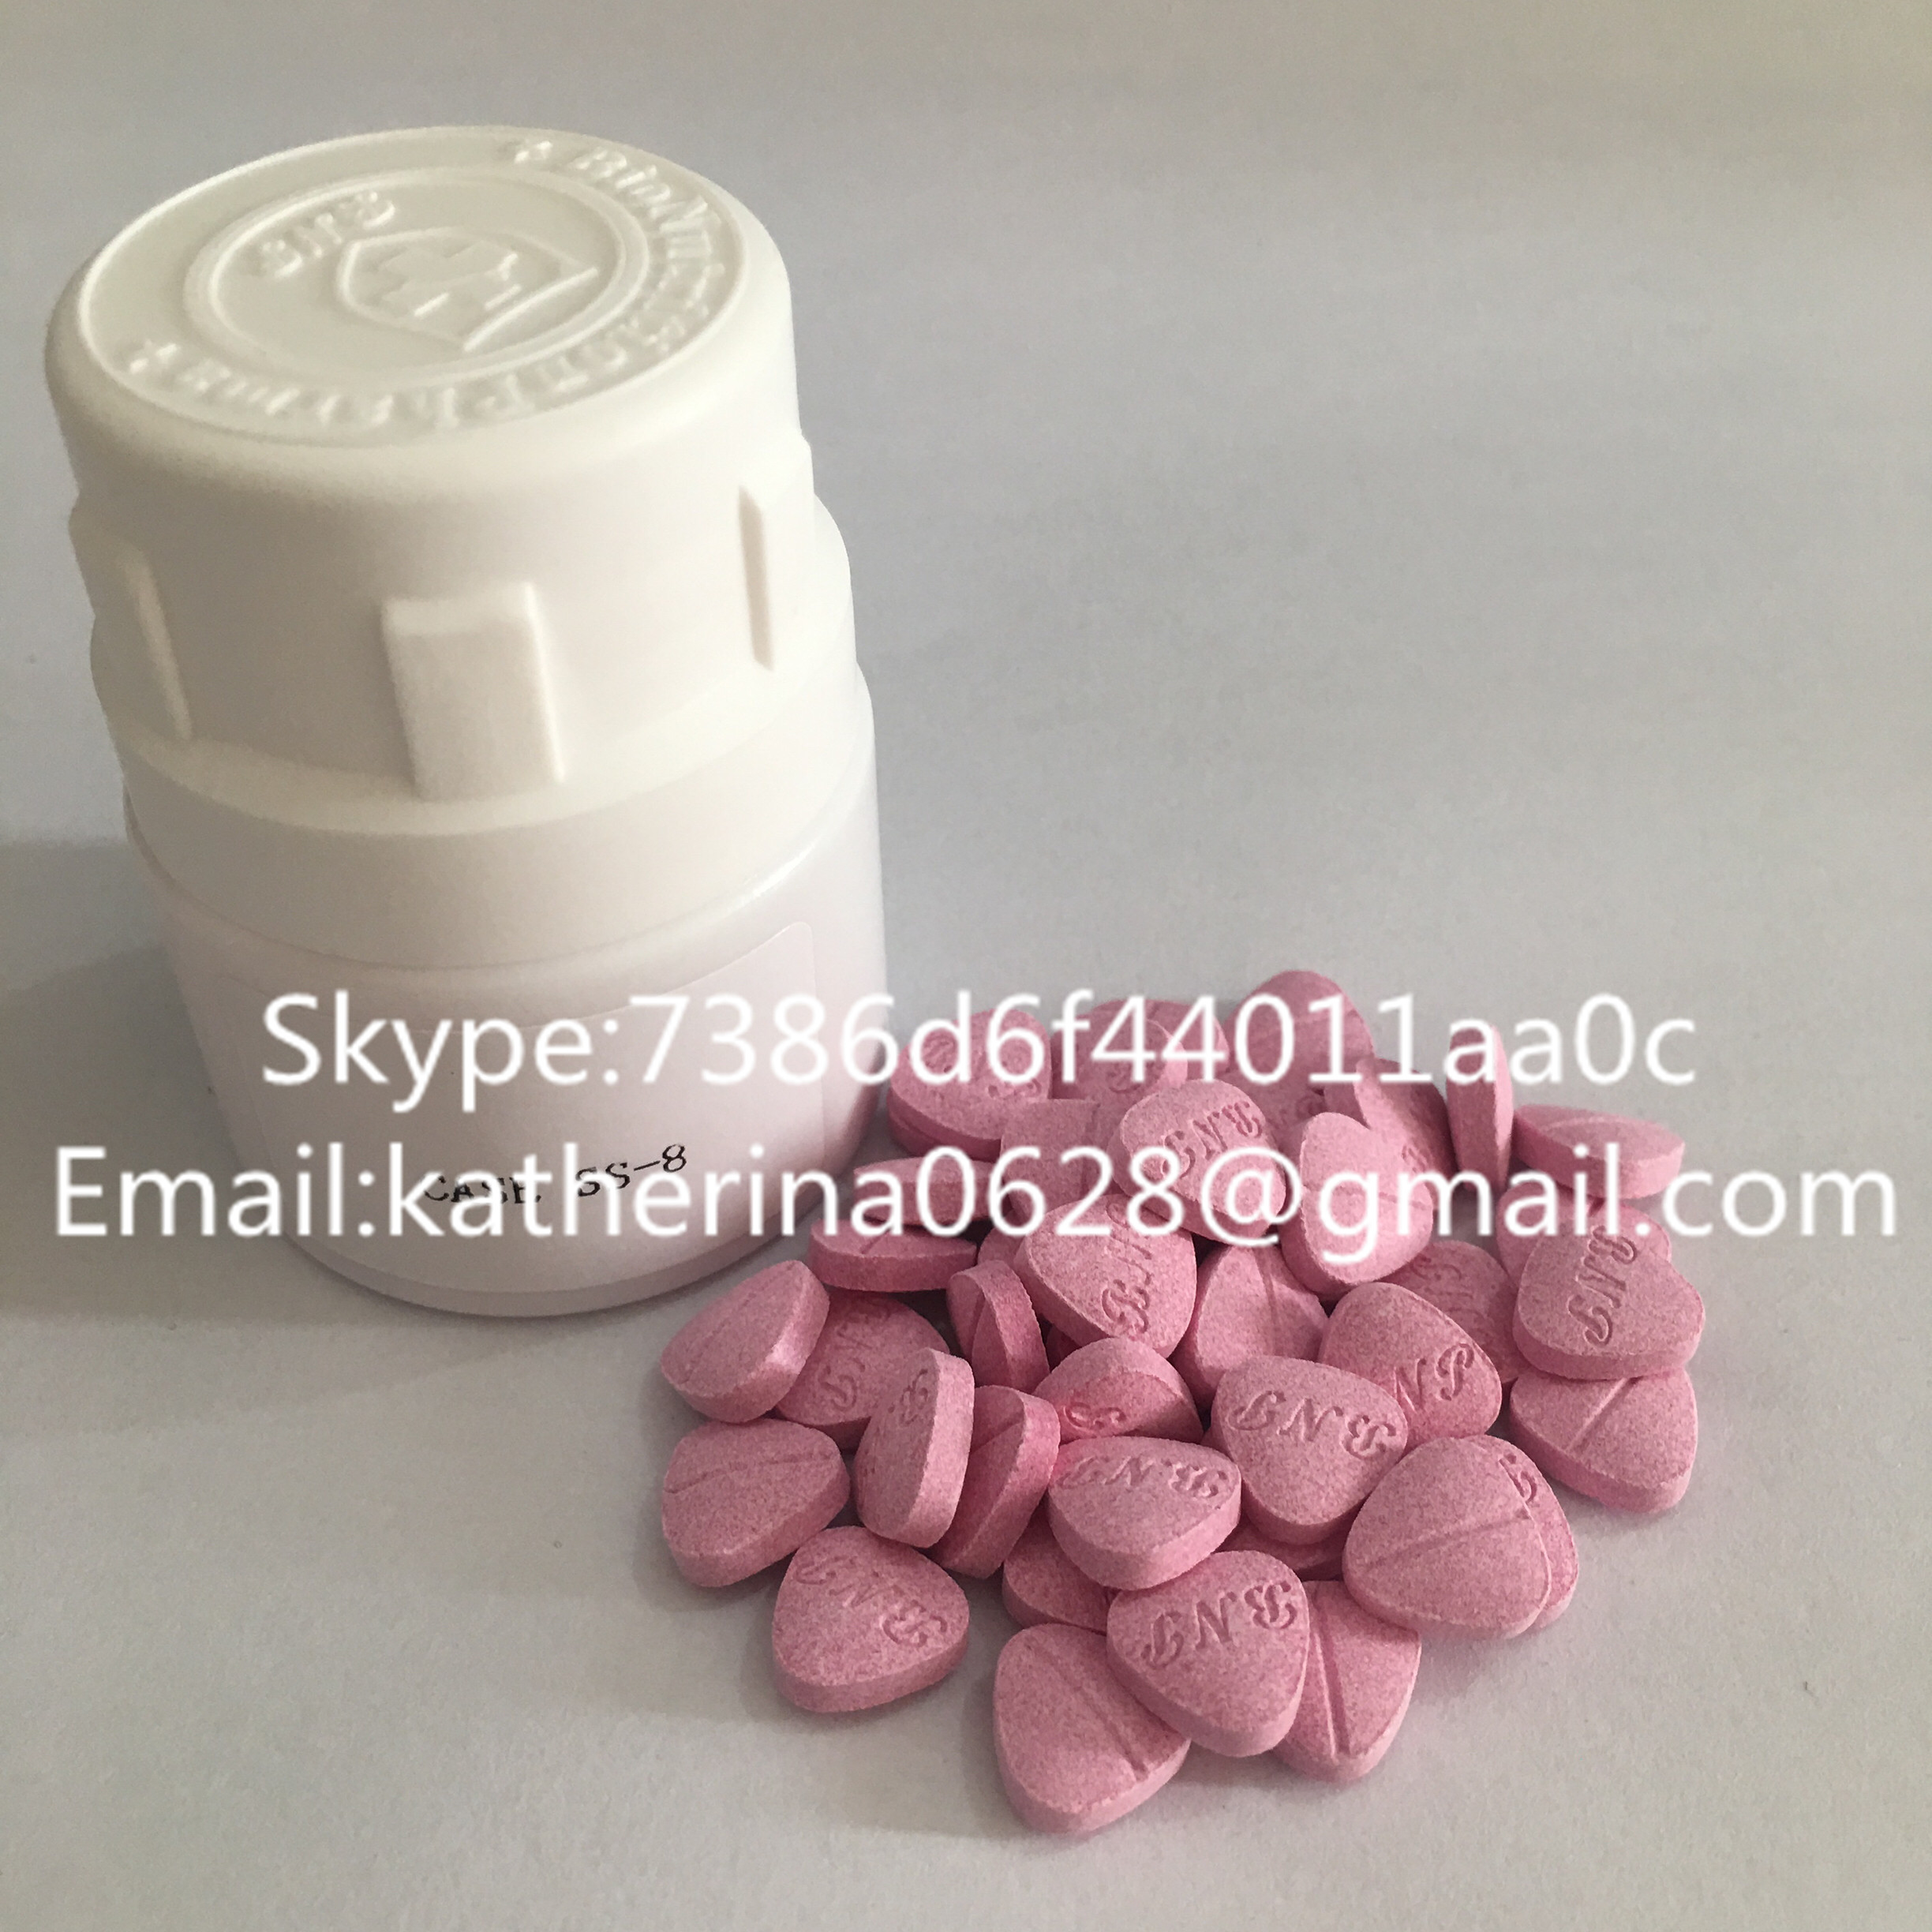 99% Purity High Quaity Sarms Products Cardarine GW-501516 10mg From